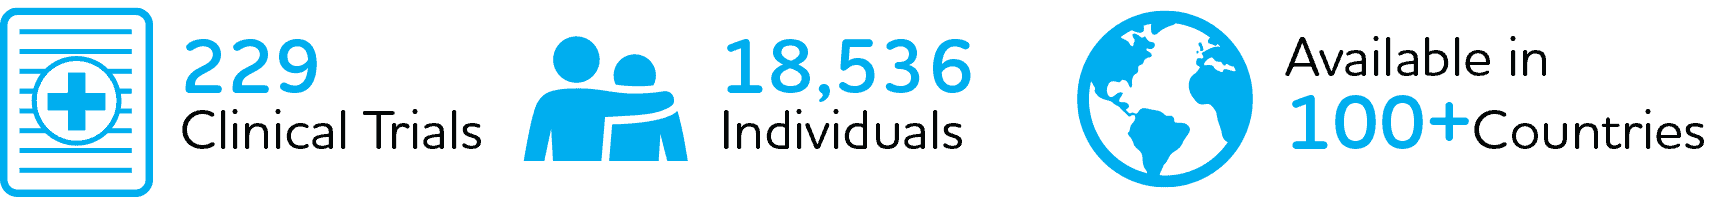 229 Clinical Trials 18,536 Individuals 100+ Countries